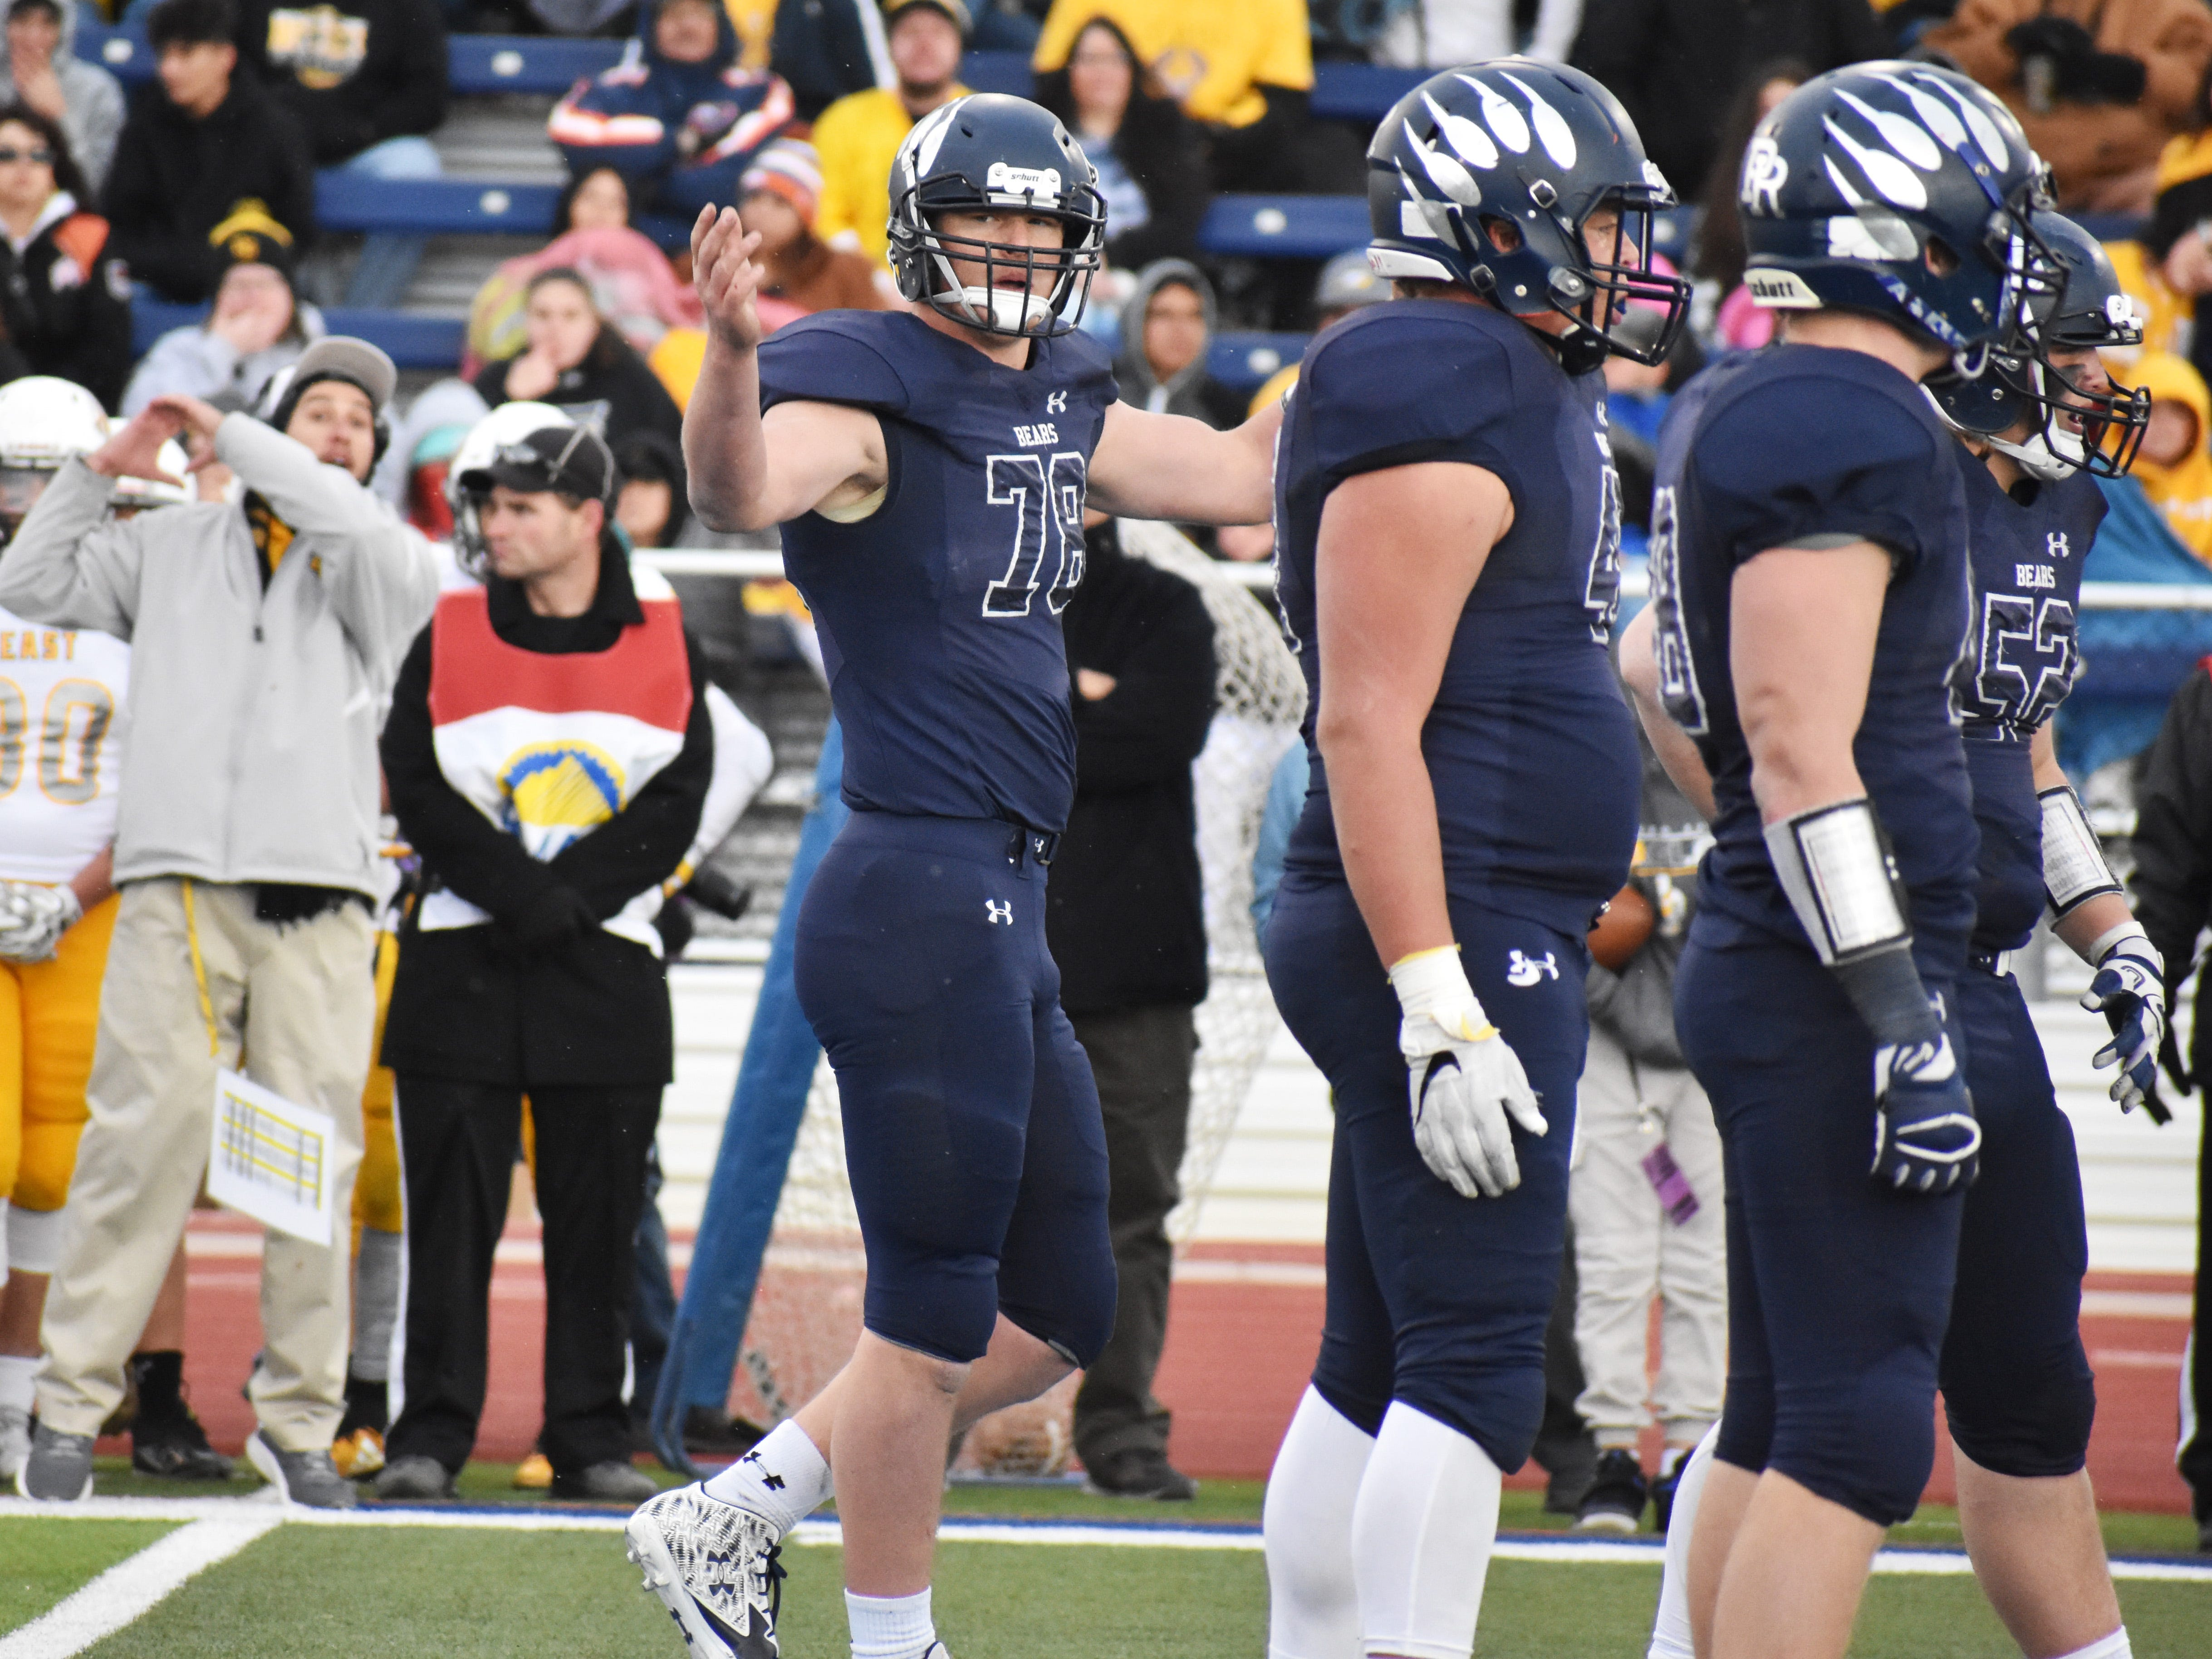 Palmer Ridge's Aidan Cullen (78) in the 3A state title game. The three-star defensive end helped Palmer Ridge win back-to-back titles.